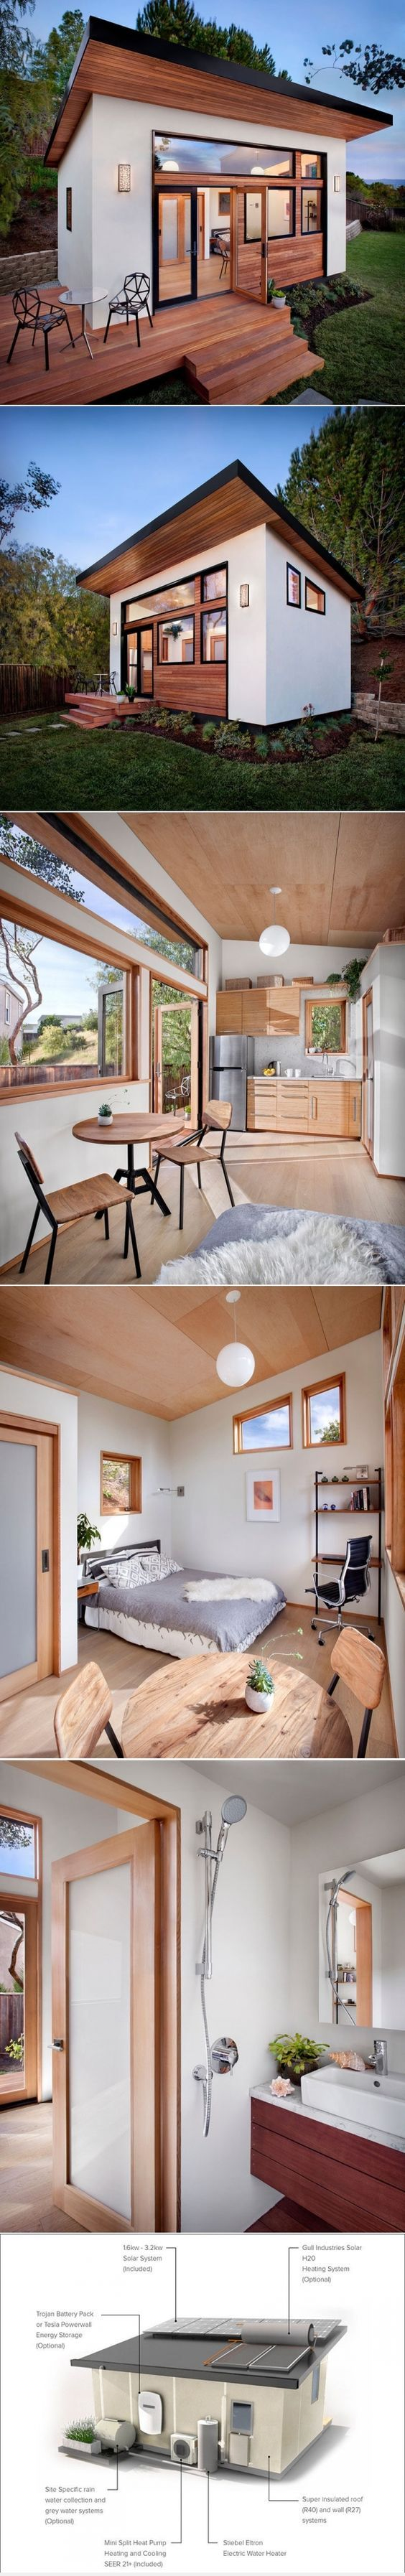 This small backyard guest house is big on ideas for compact living…: